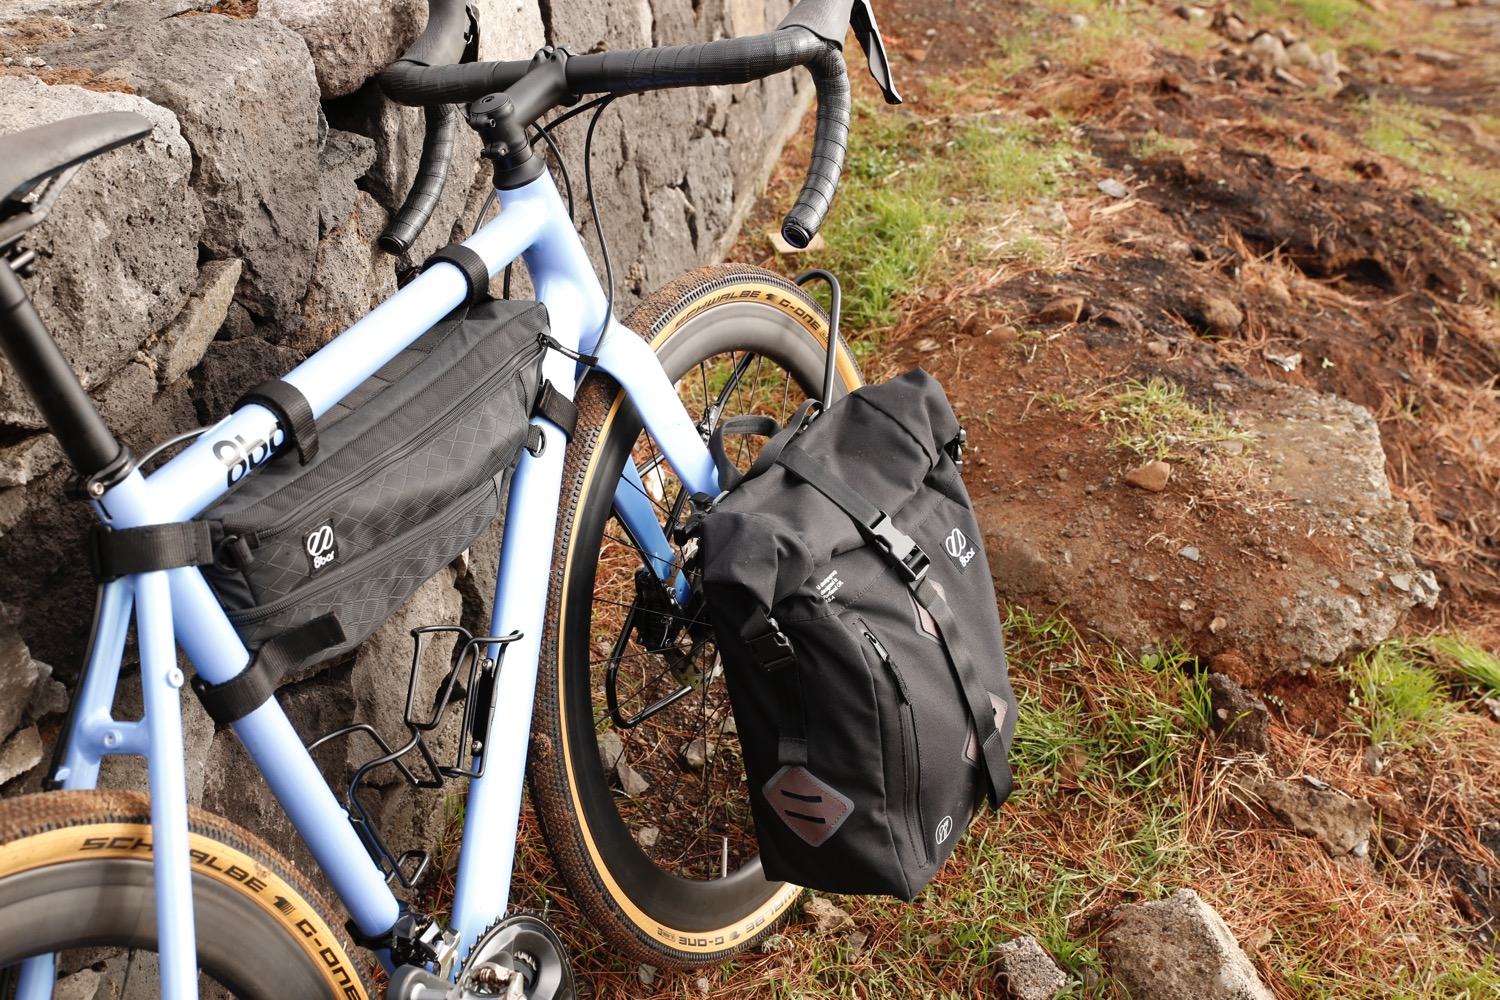 8bar-gran-canaria-032-mitte-framebag-pannier-bike-mood-gravel-allride